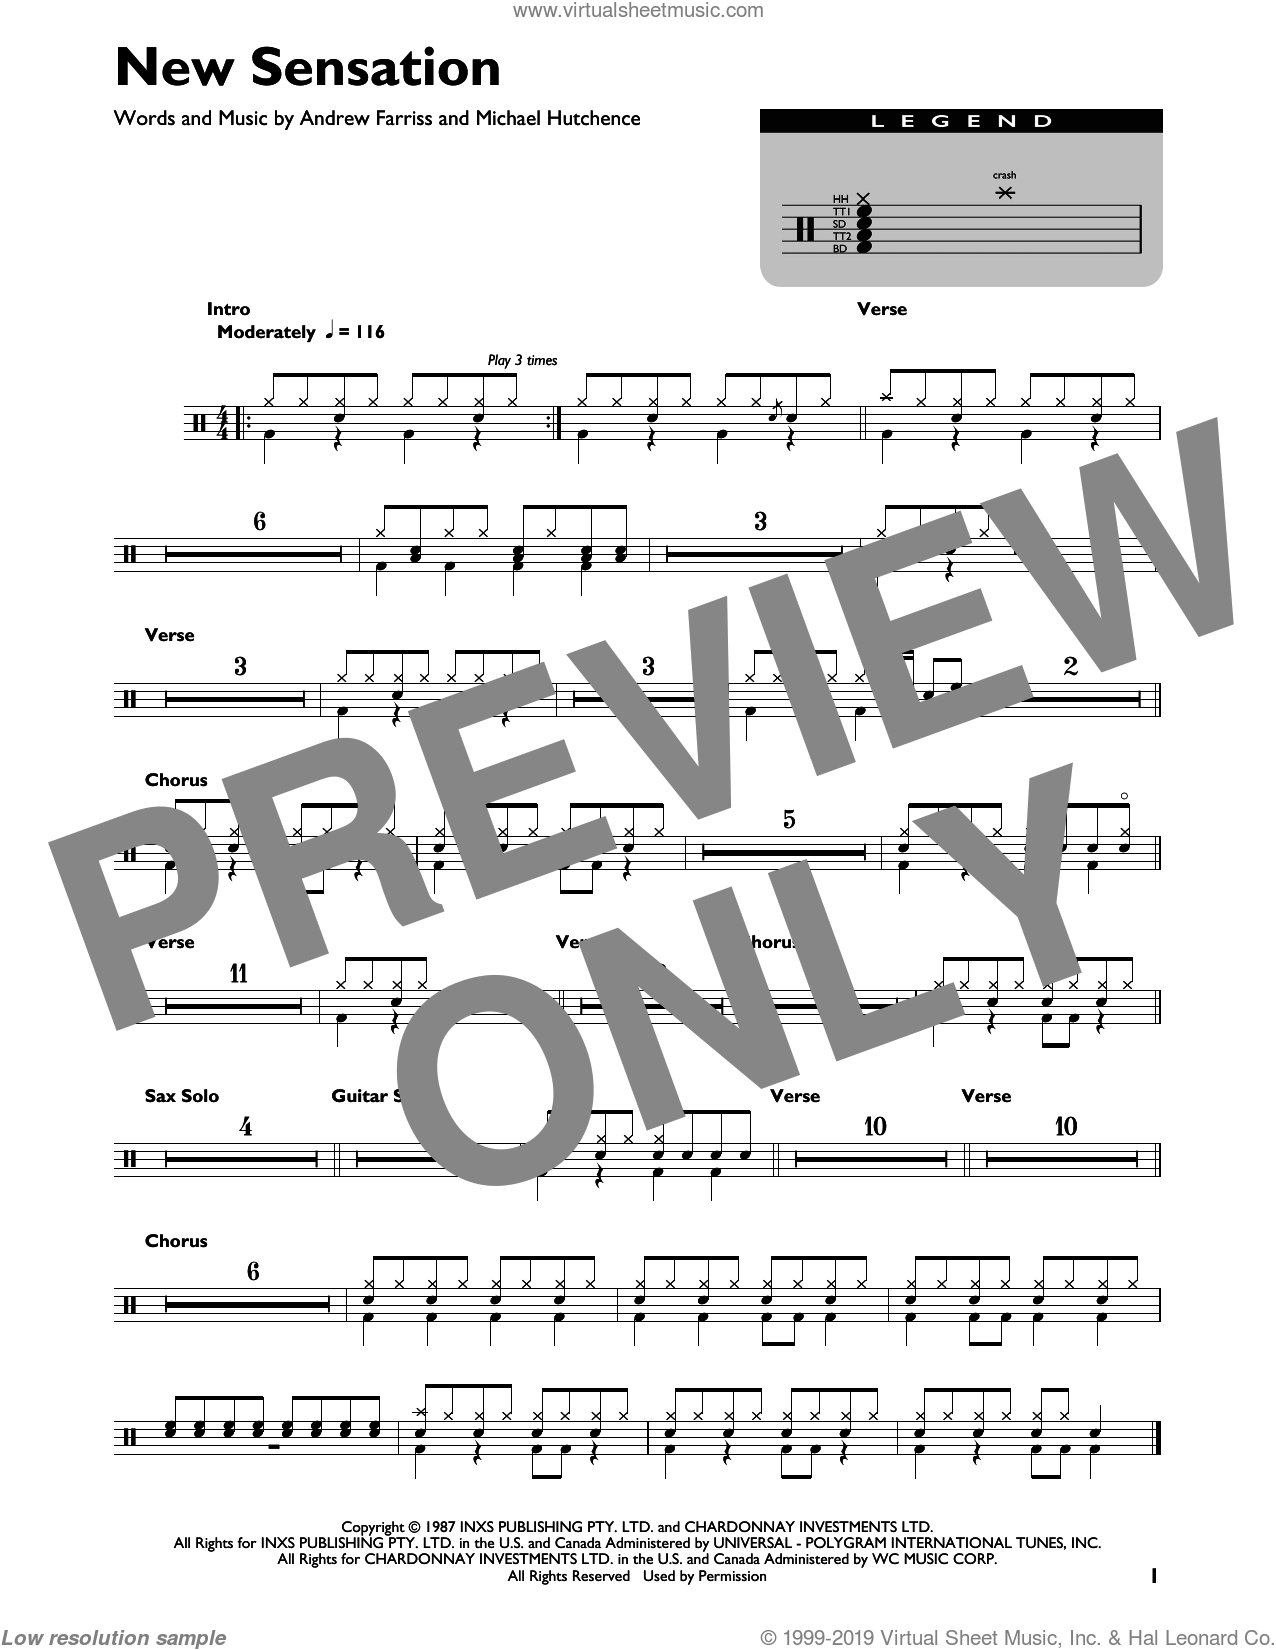 New Sensation sheet music for drums (percussions) by INXS, Andrew Farriss and Michael Hutchence, intermediate skill level